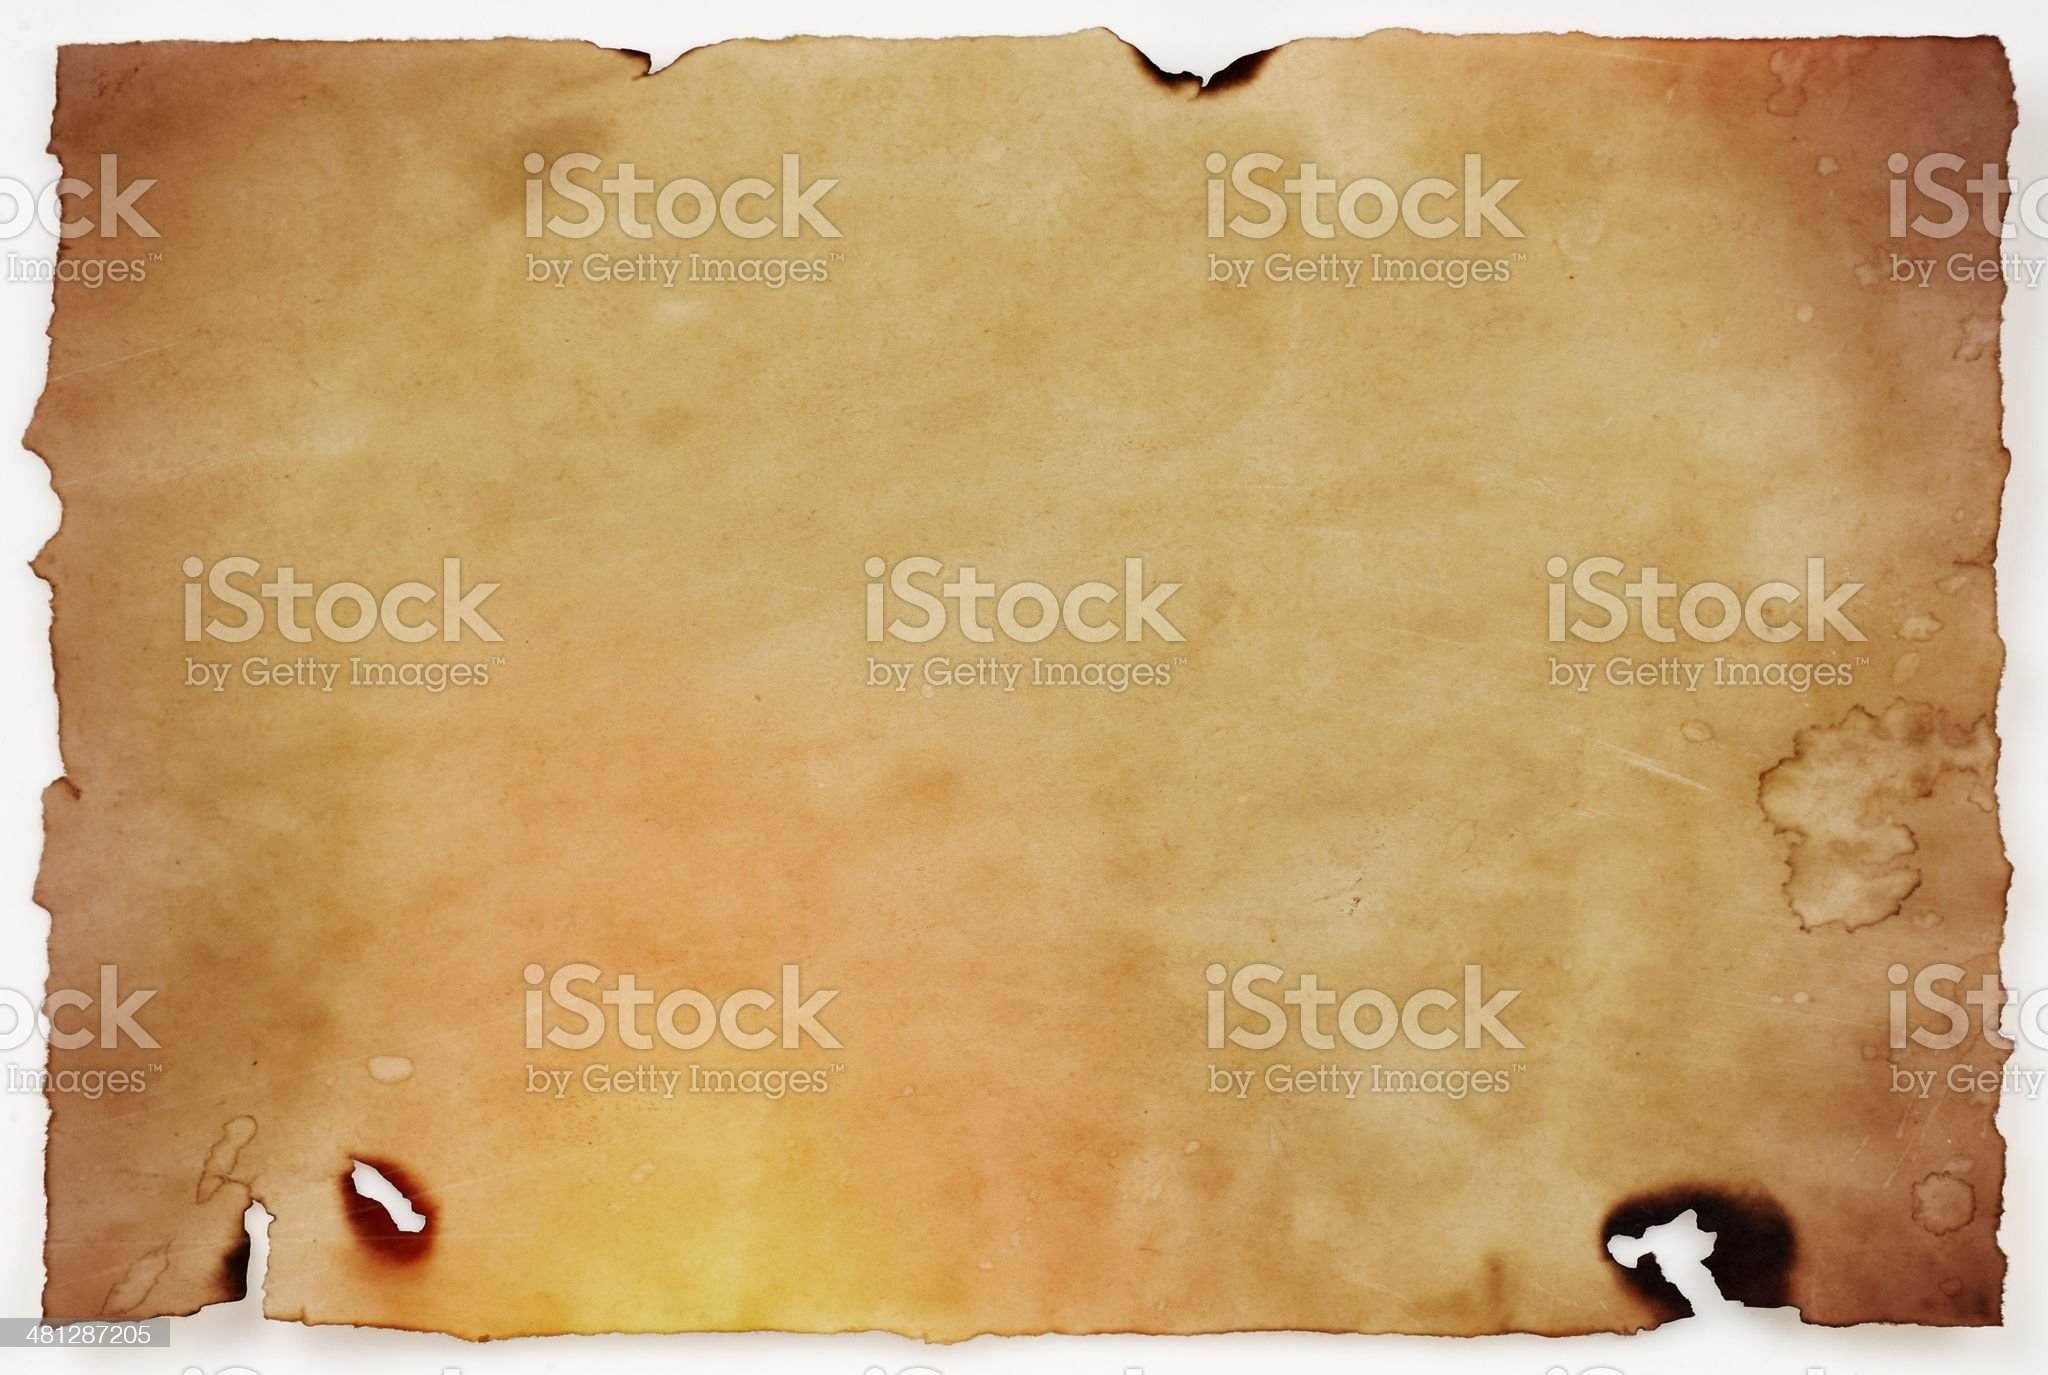 Burnt old paper royalty-free stock photo